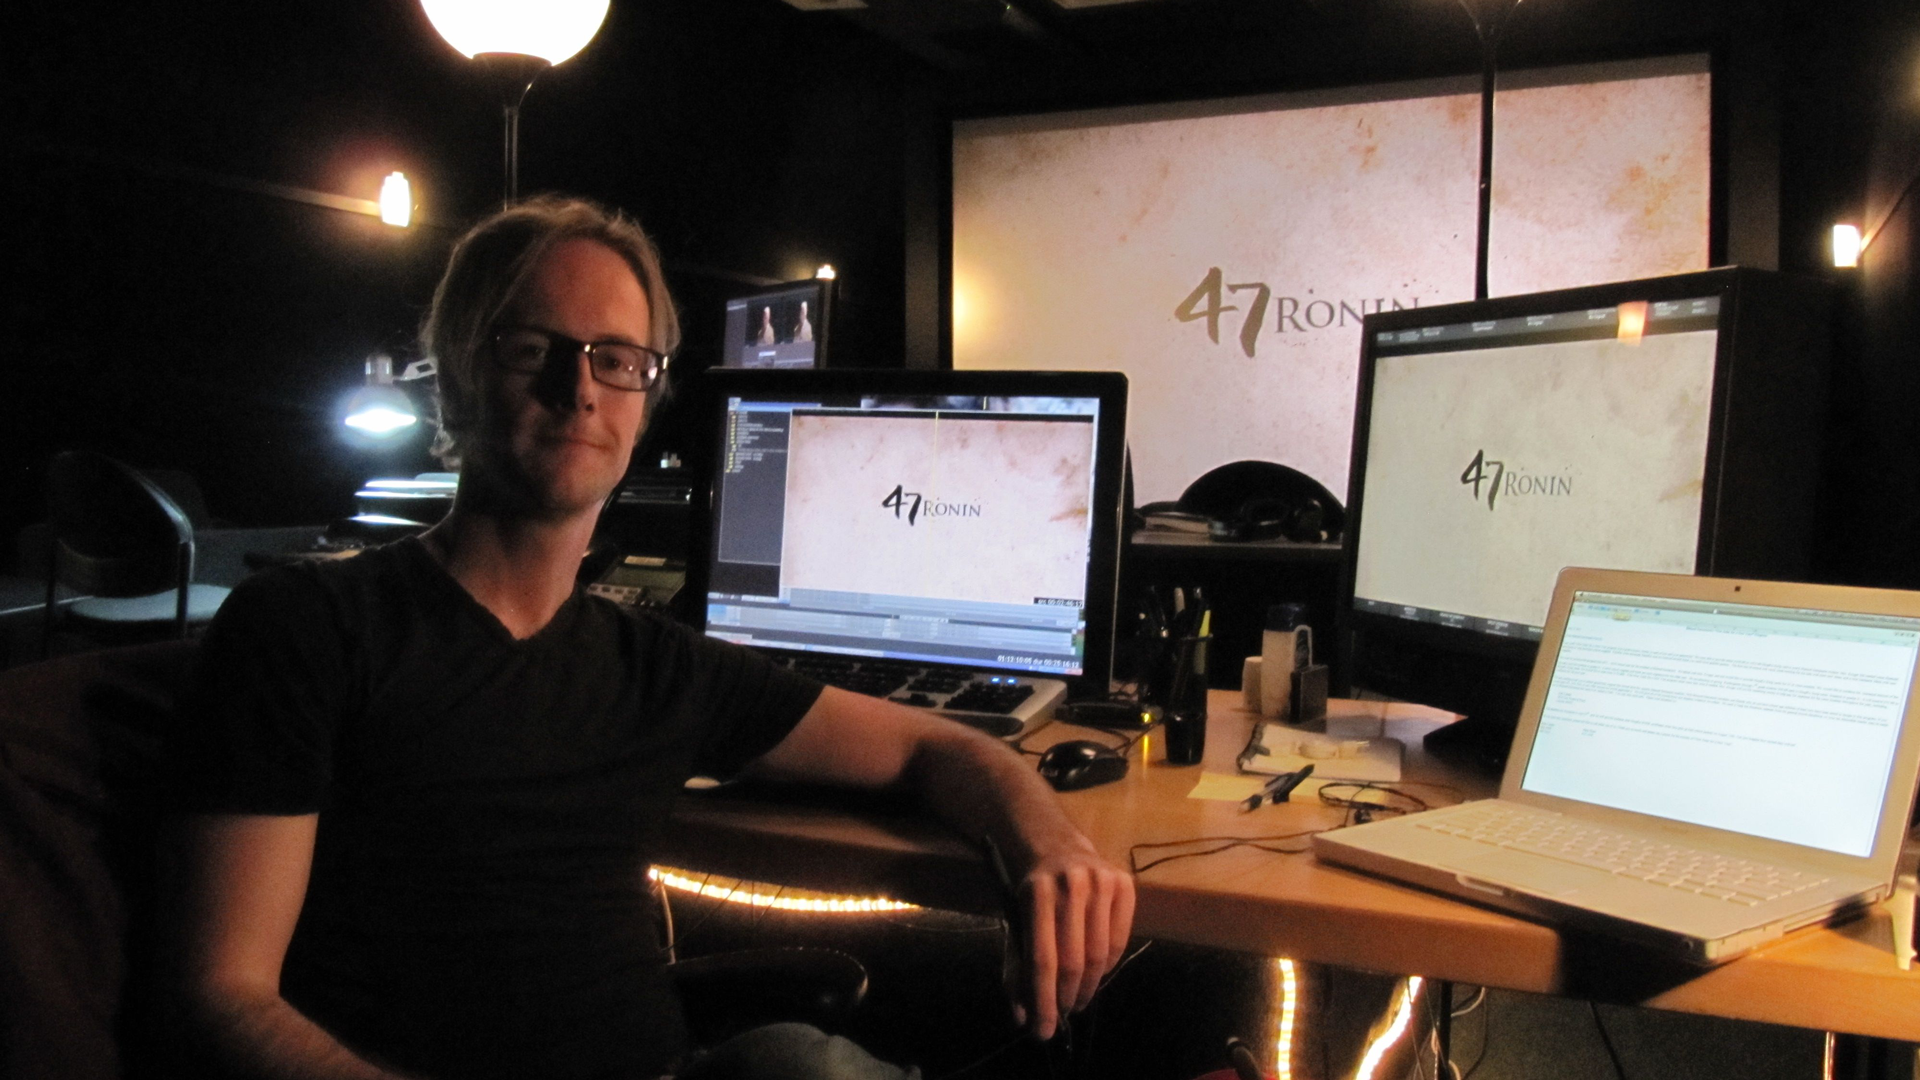 Tom Cabela poses in his office backed by editing software and equipment for 47 Ronin